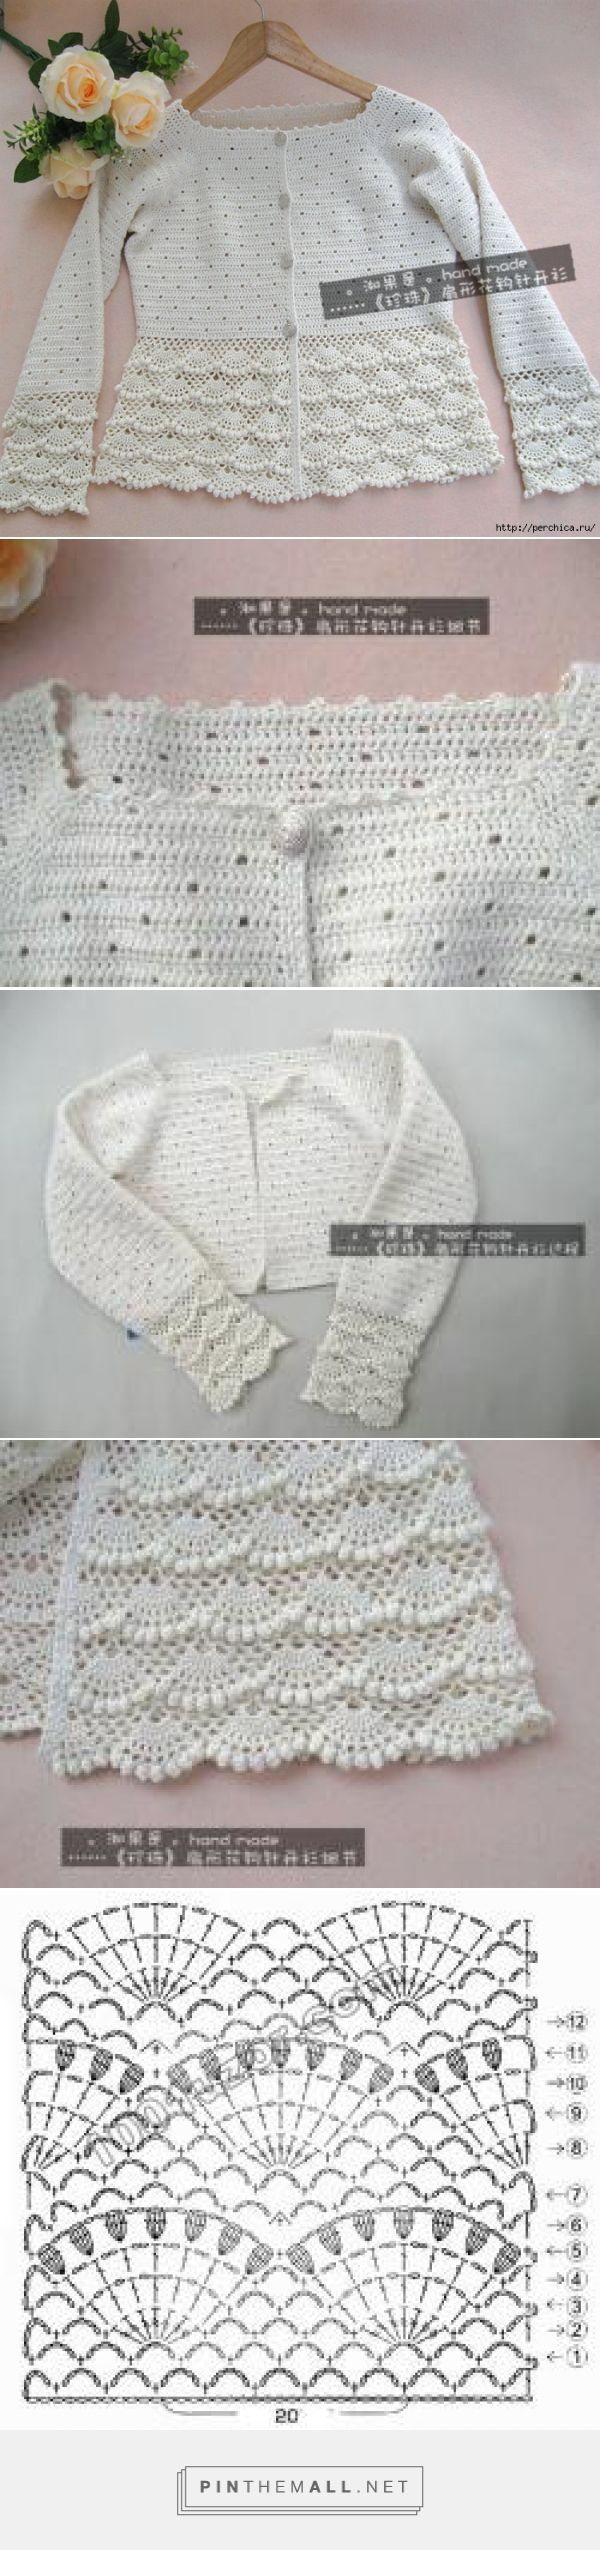 438 best Crocheting images on Pinterest | Glove, Crochet baby ...